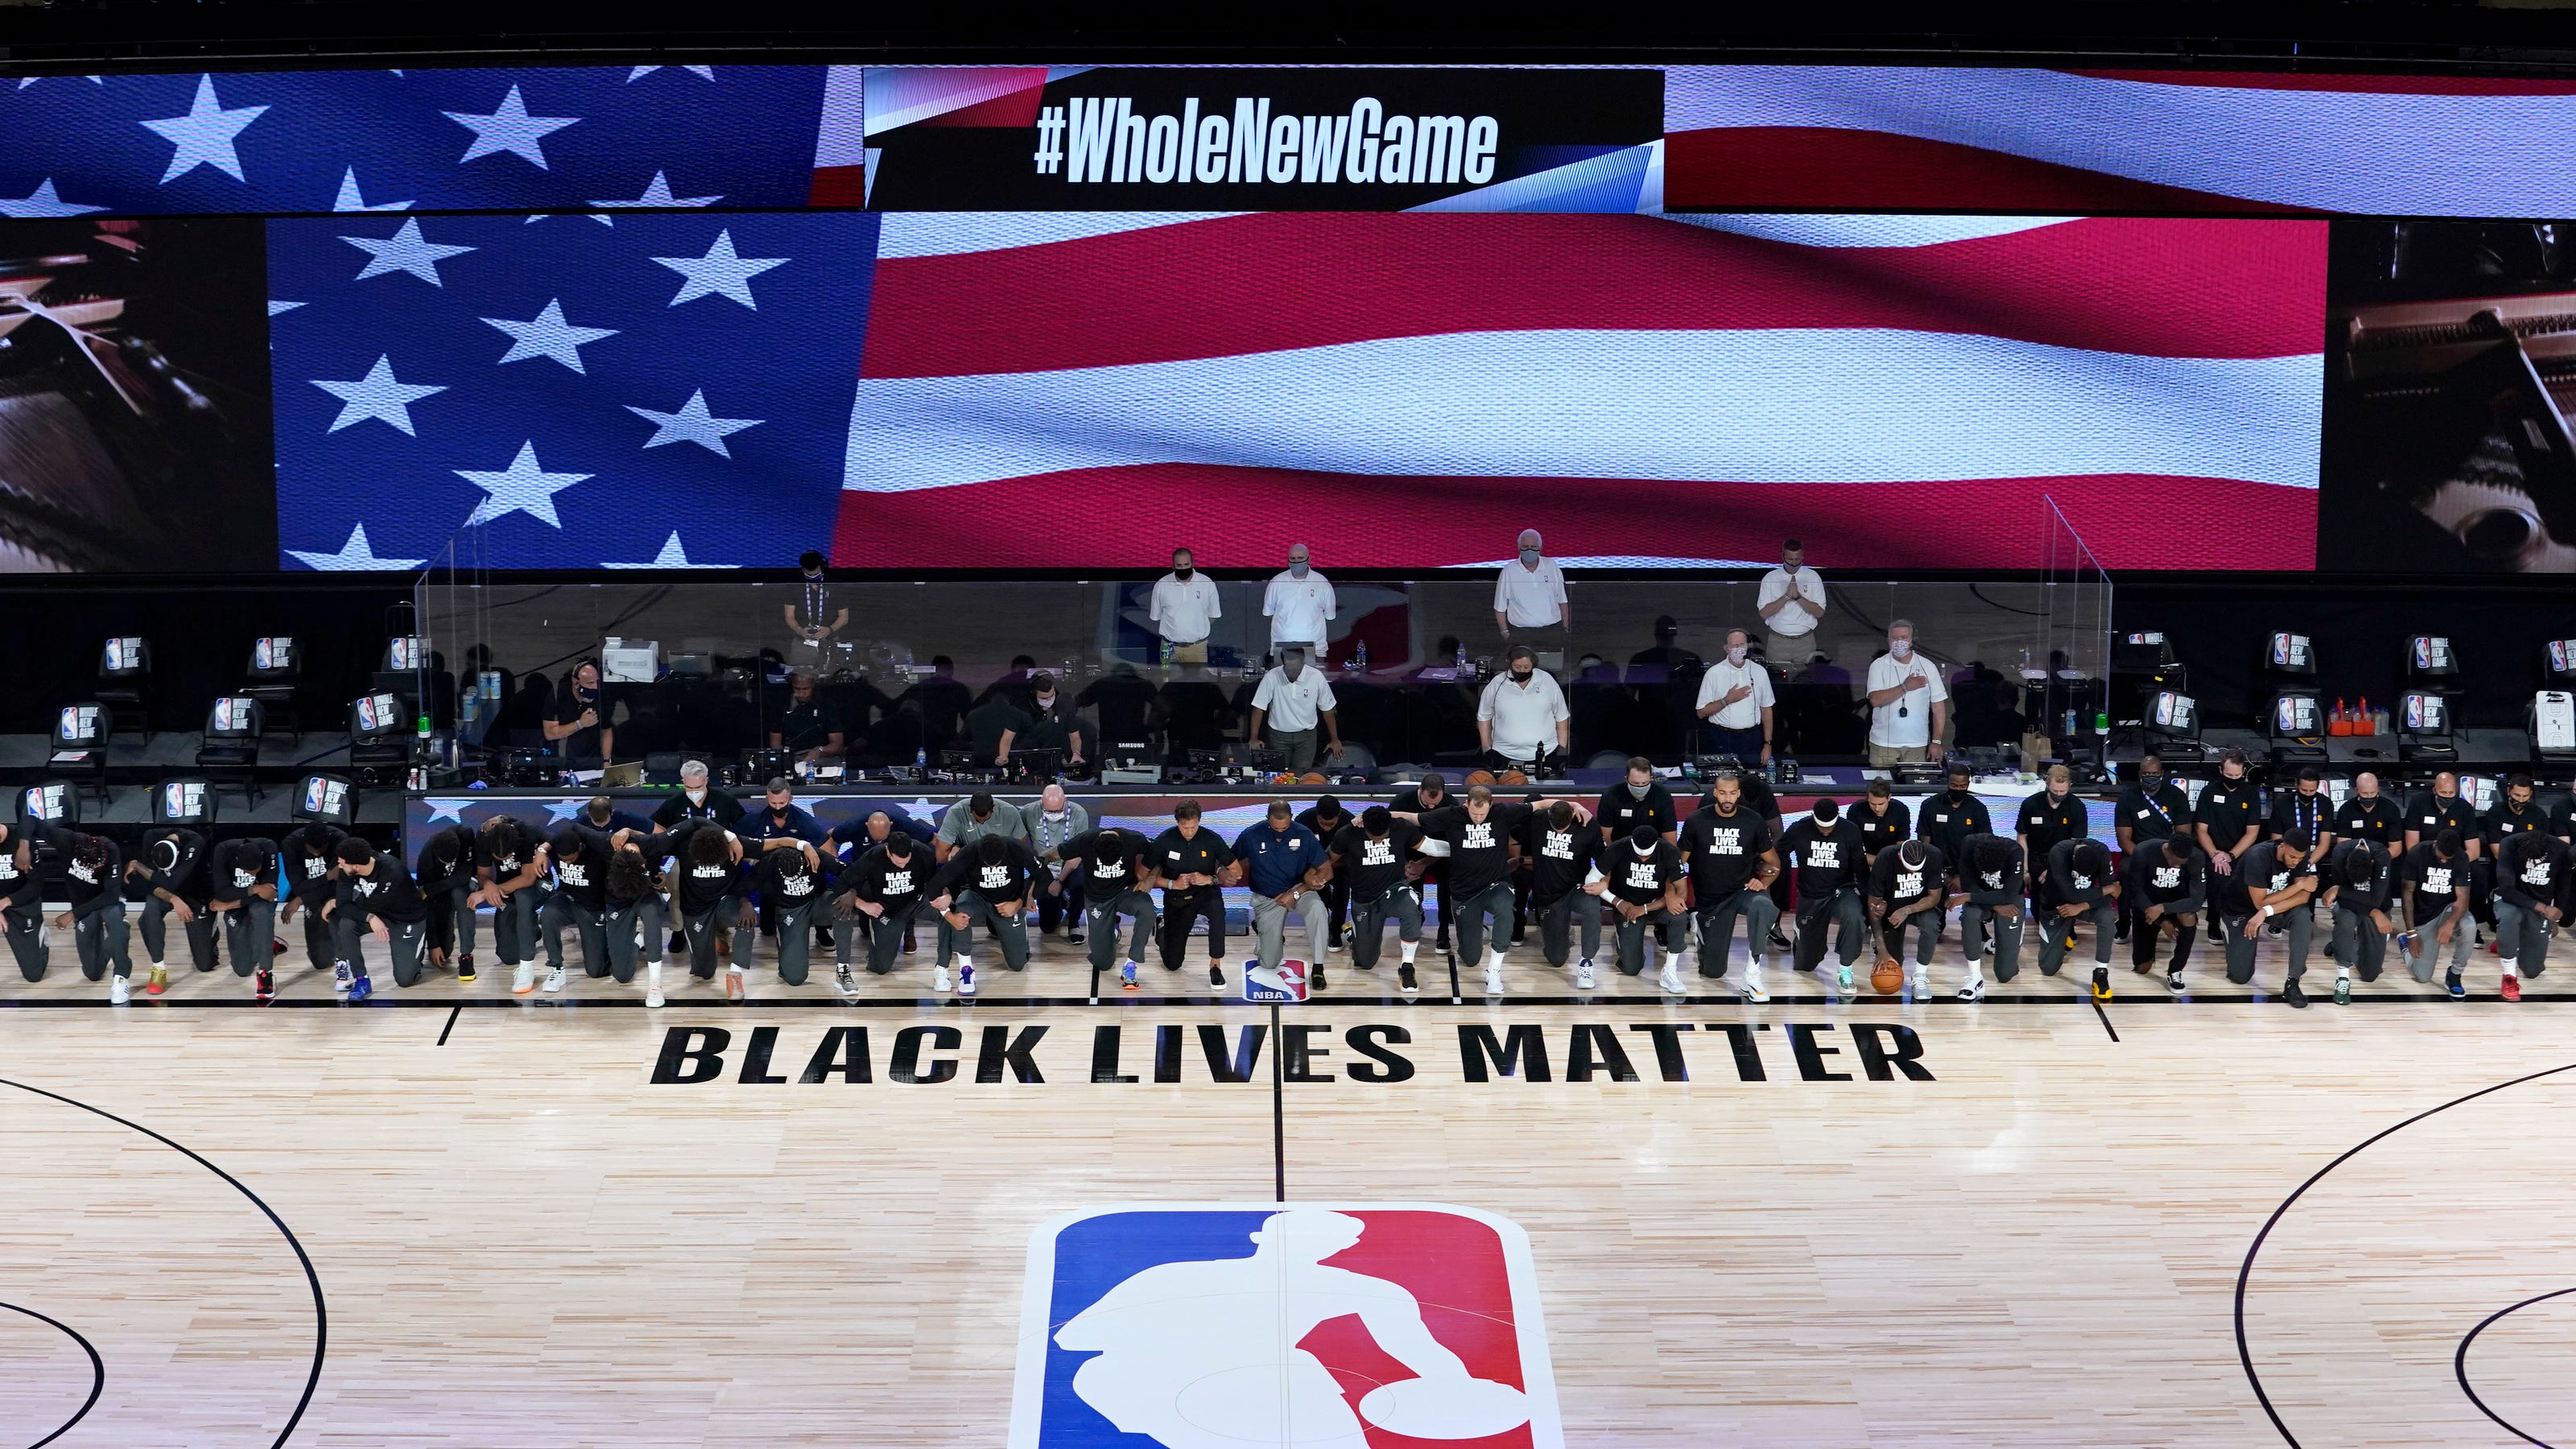 Nba Pelicans Jazz Lakers Clippers Kneel For National Anthem